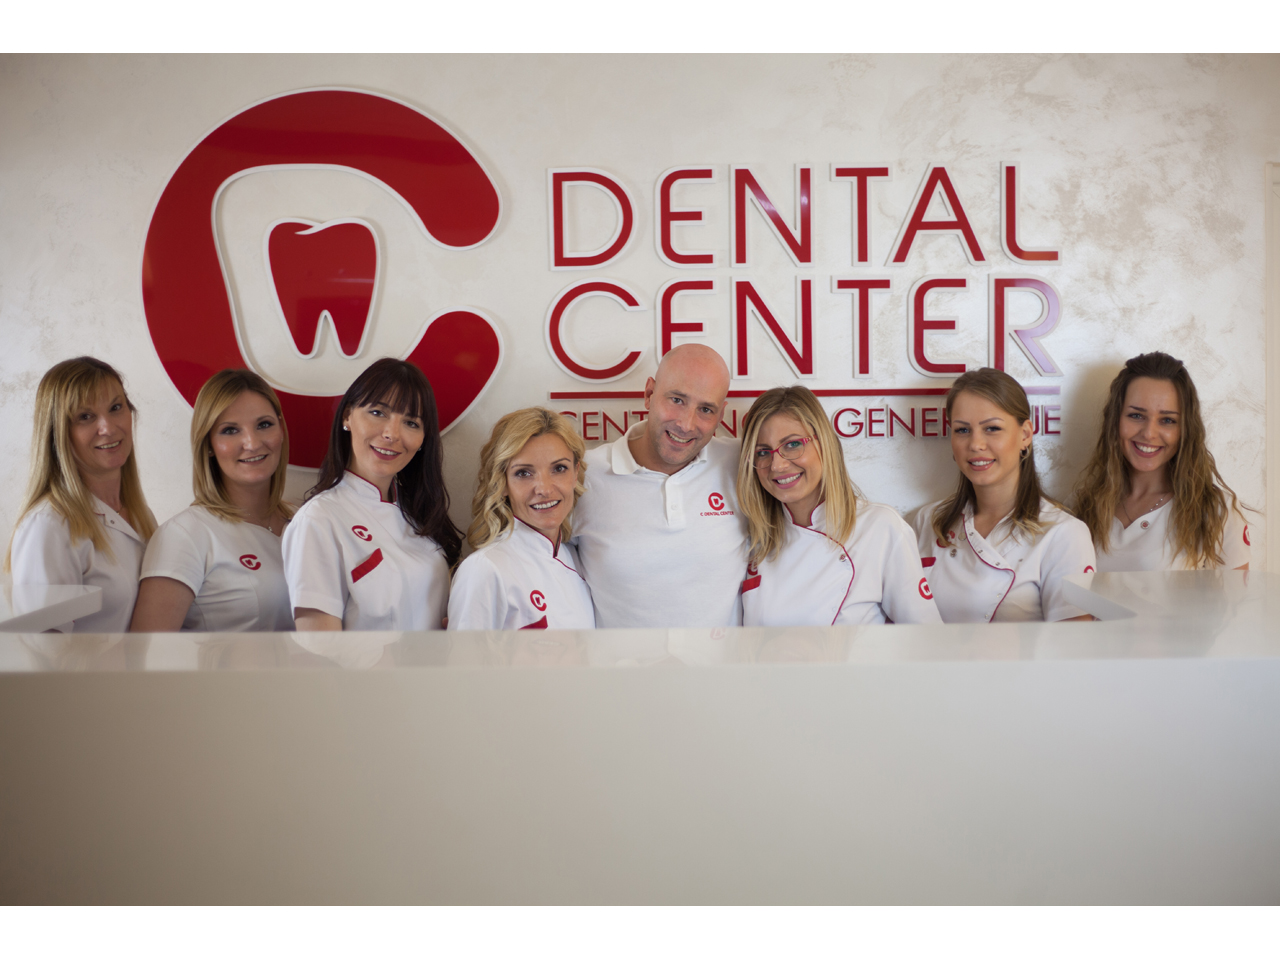 C DENTAL CENTER Stomatološke ordinacije Beograd